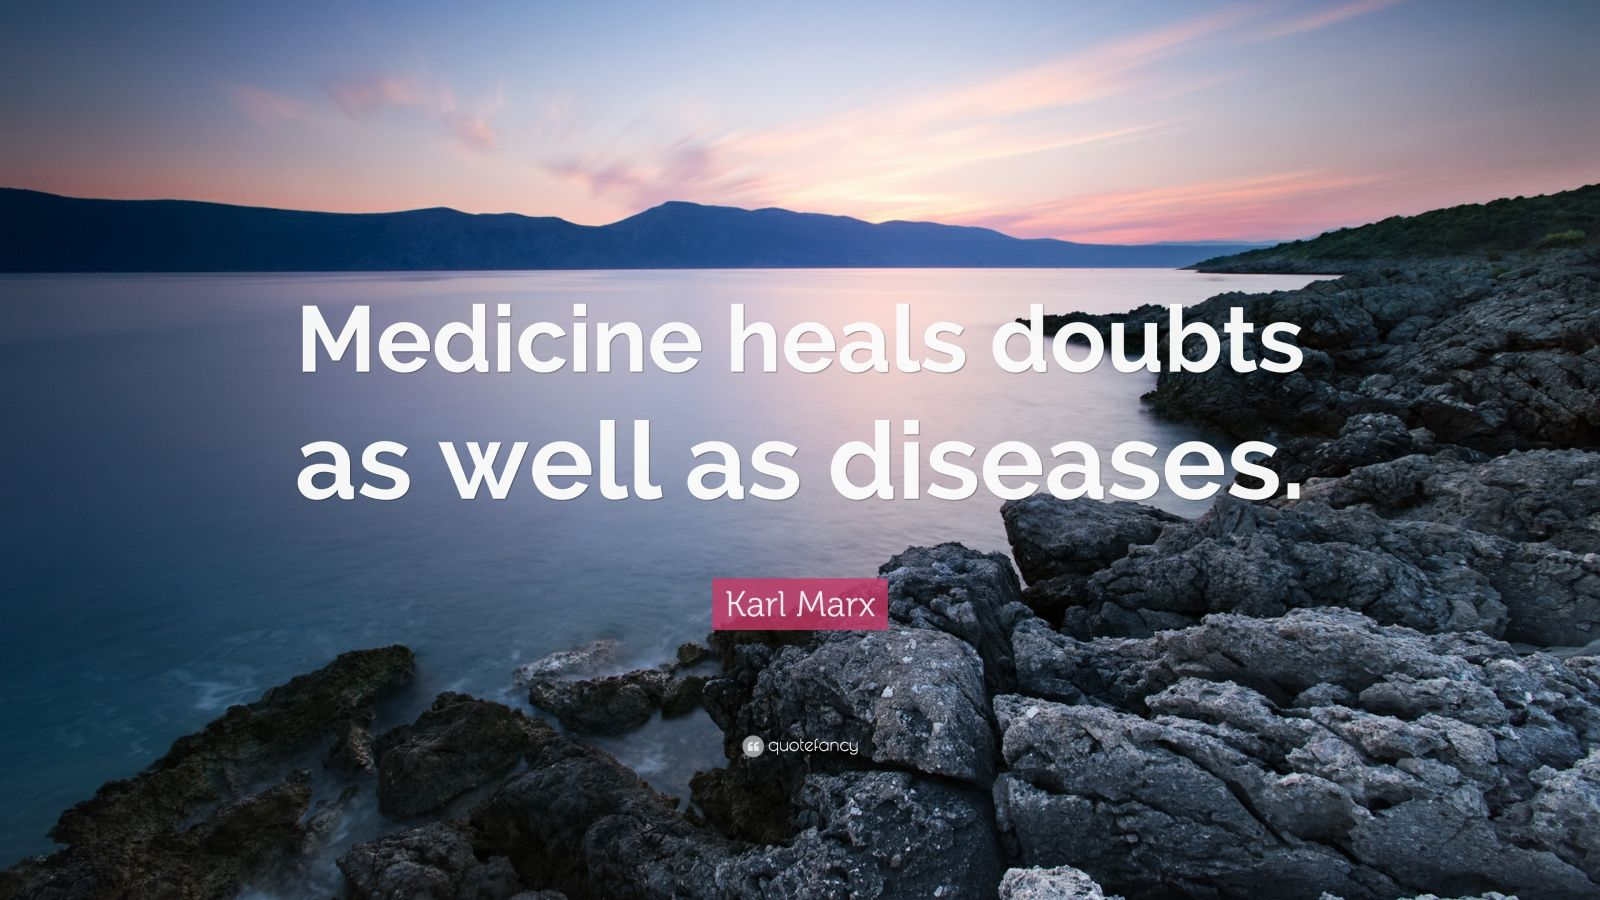 """Karl Marx Quote: """"Medicine heals doubts as well as diseases."""""""